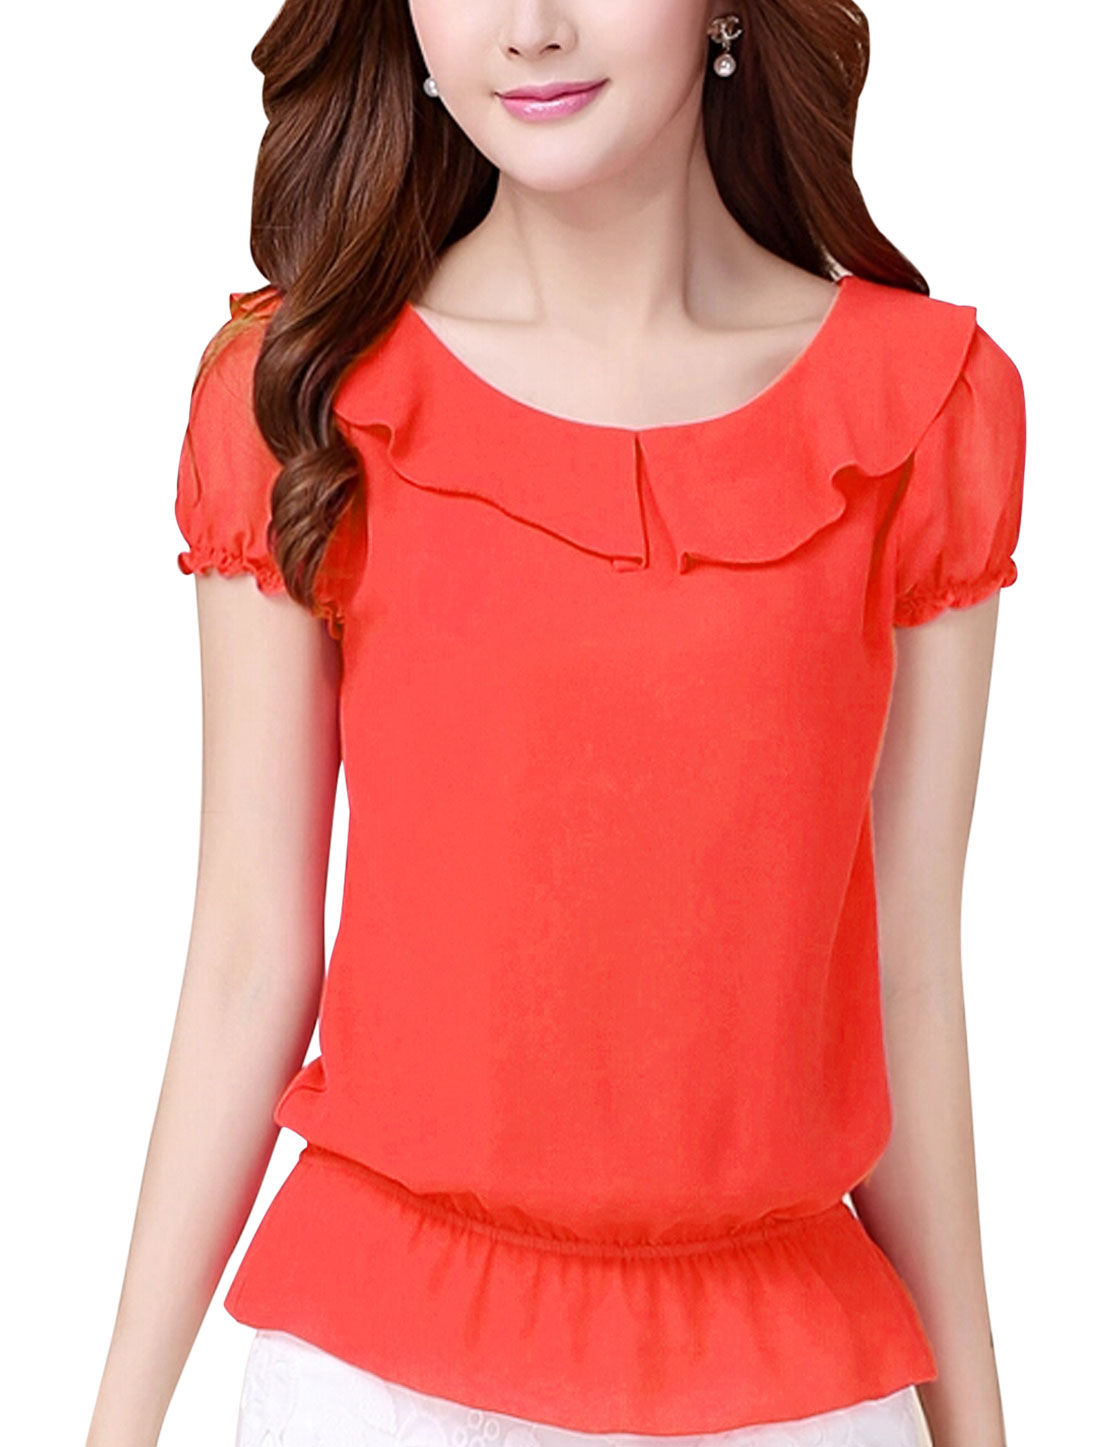 Lady Pullover Peter Pan Collar Cozy Fit Chiffon Top Coral S